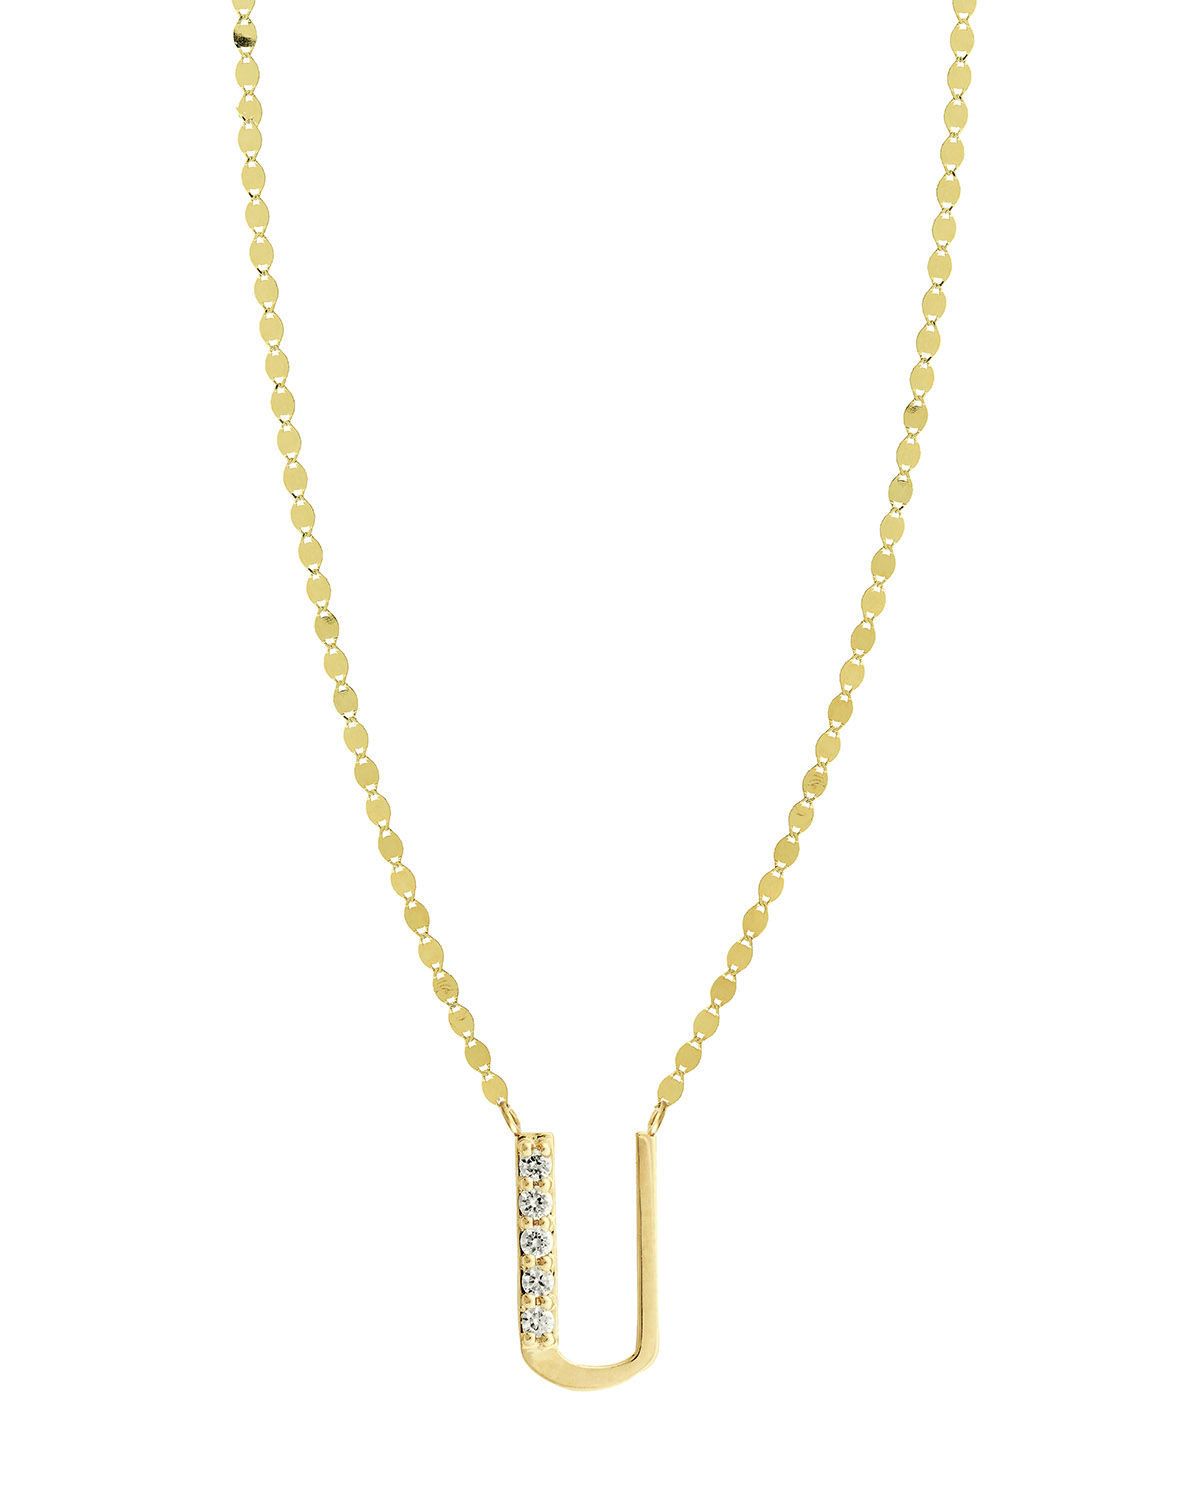 Lana Get Personal Initial Pendant Necklace with Diamonds